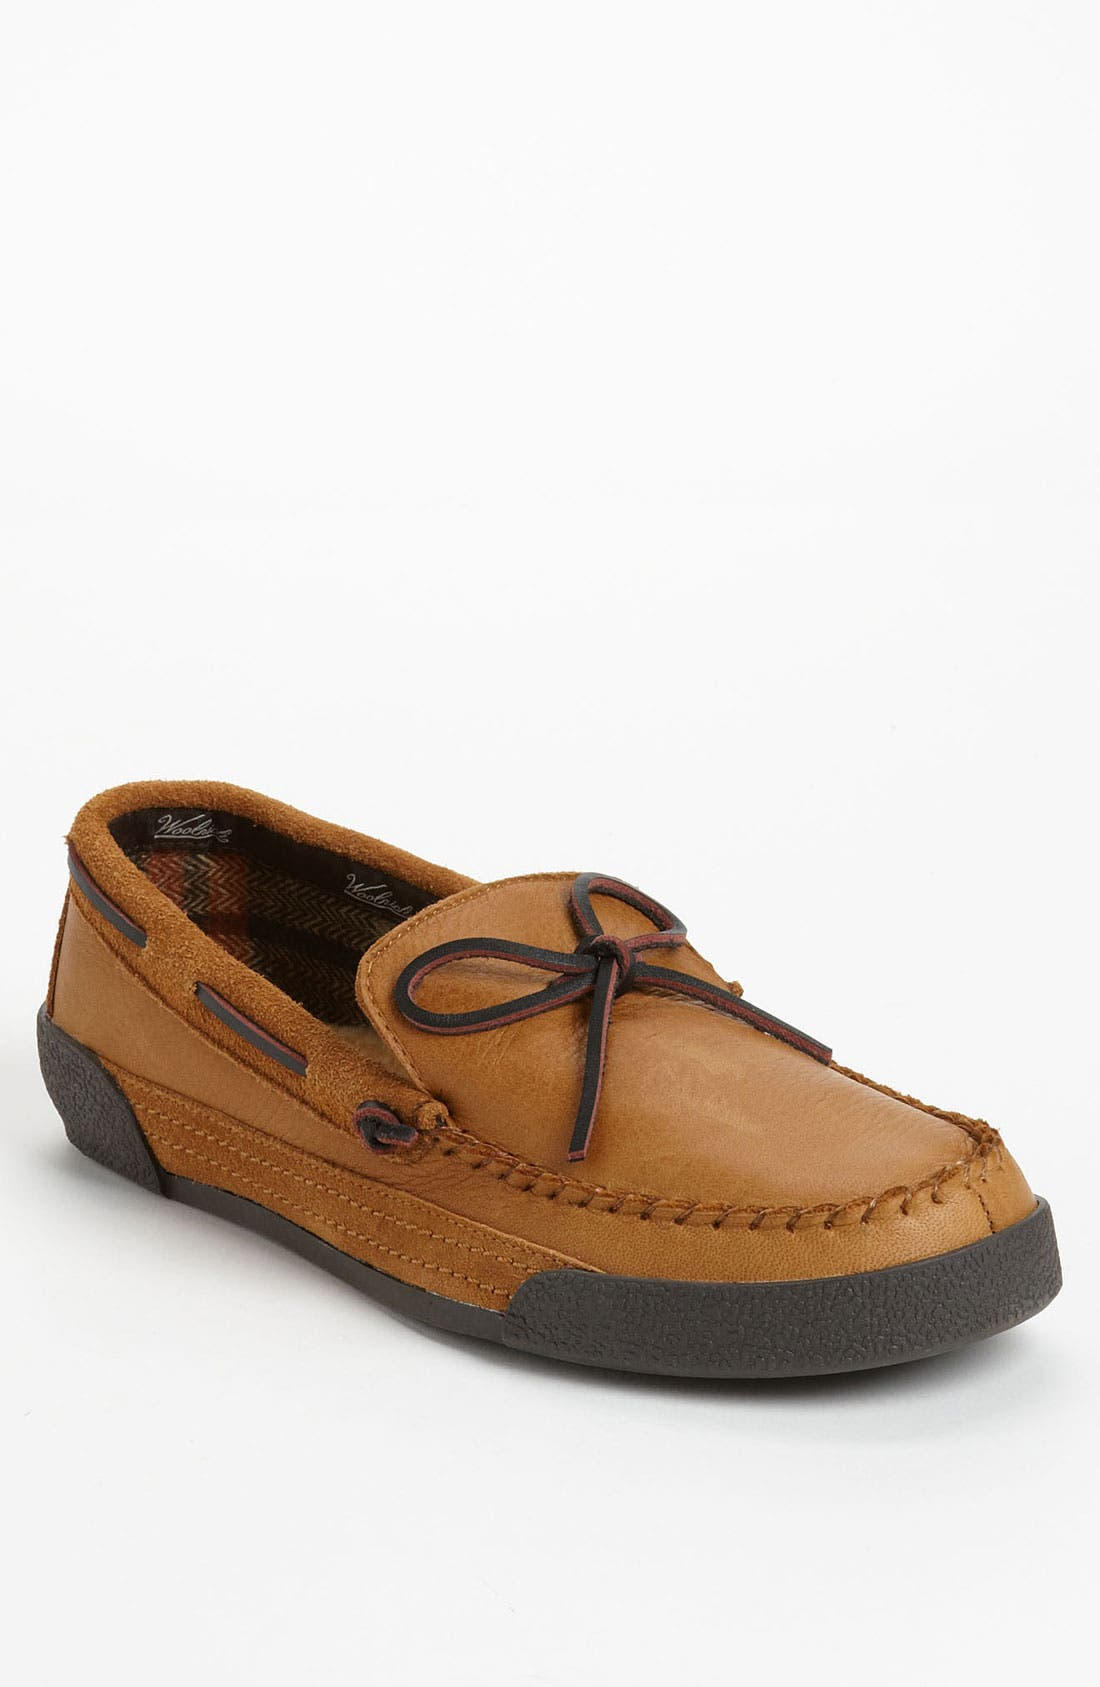 Alternate Image 1 Selected - Woolrich 'Brier' Slipper (Online Only)